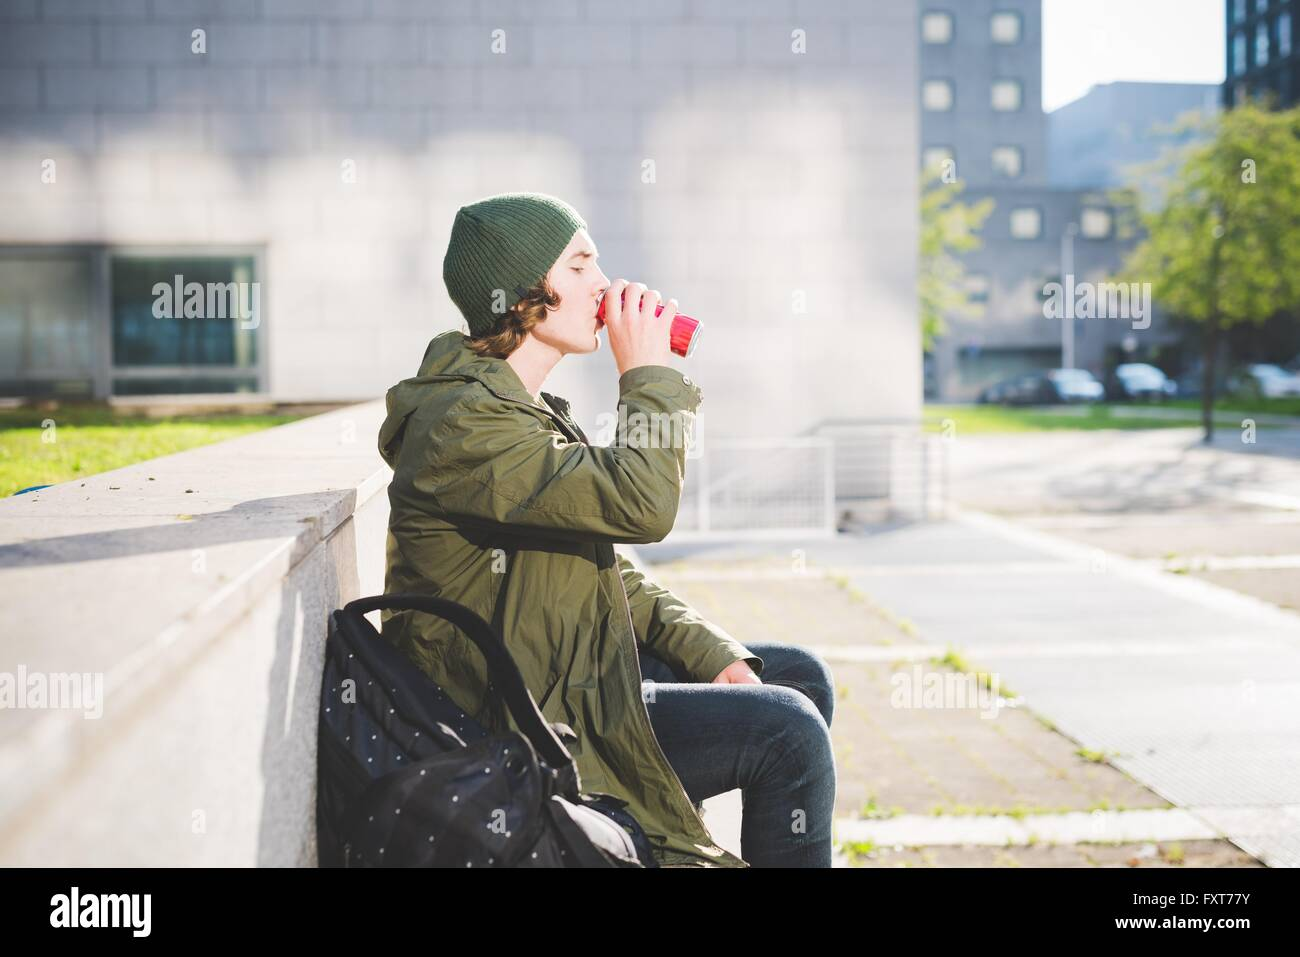 Young man sitting on urban wall drinking from can Stock Photo